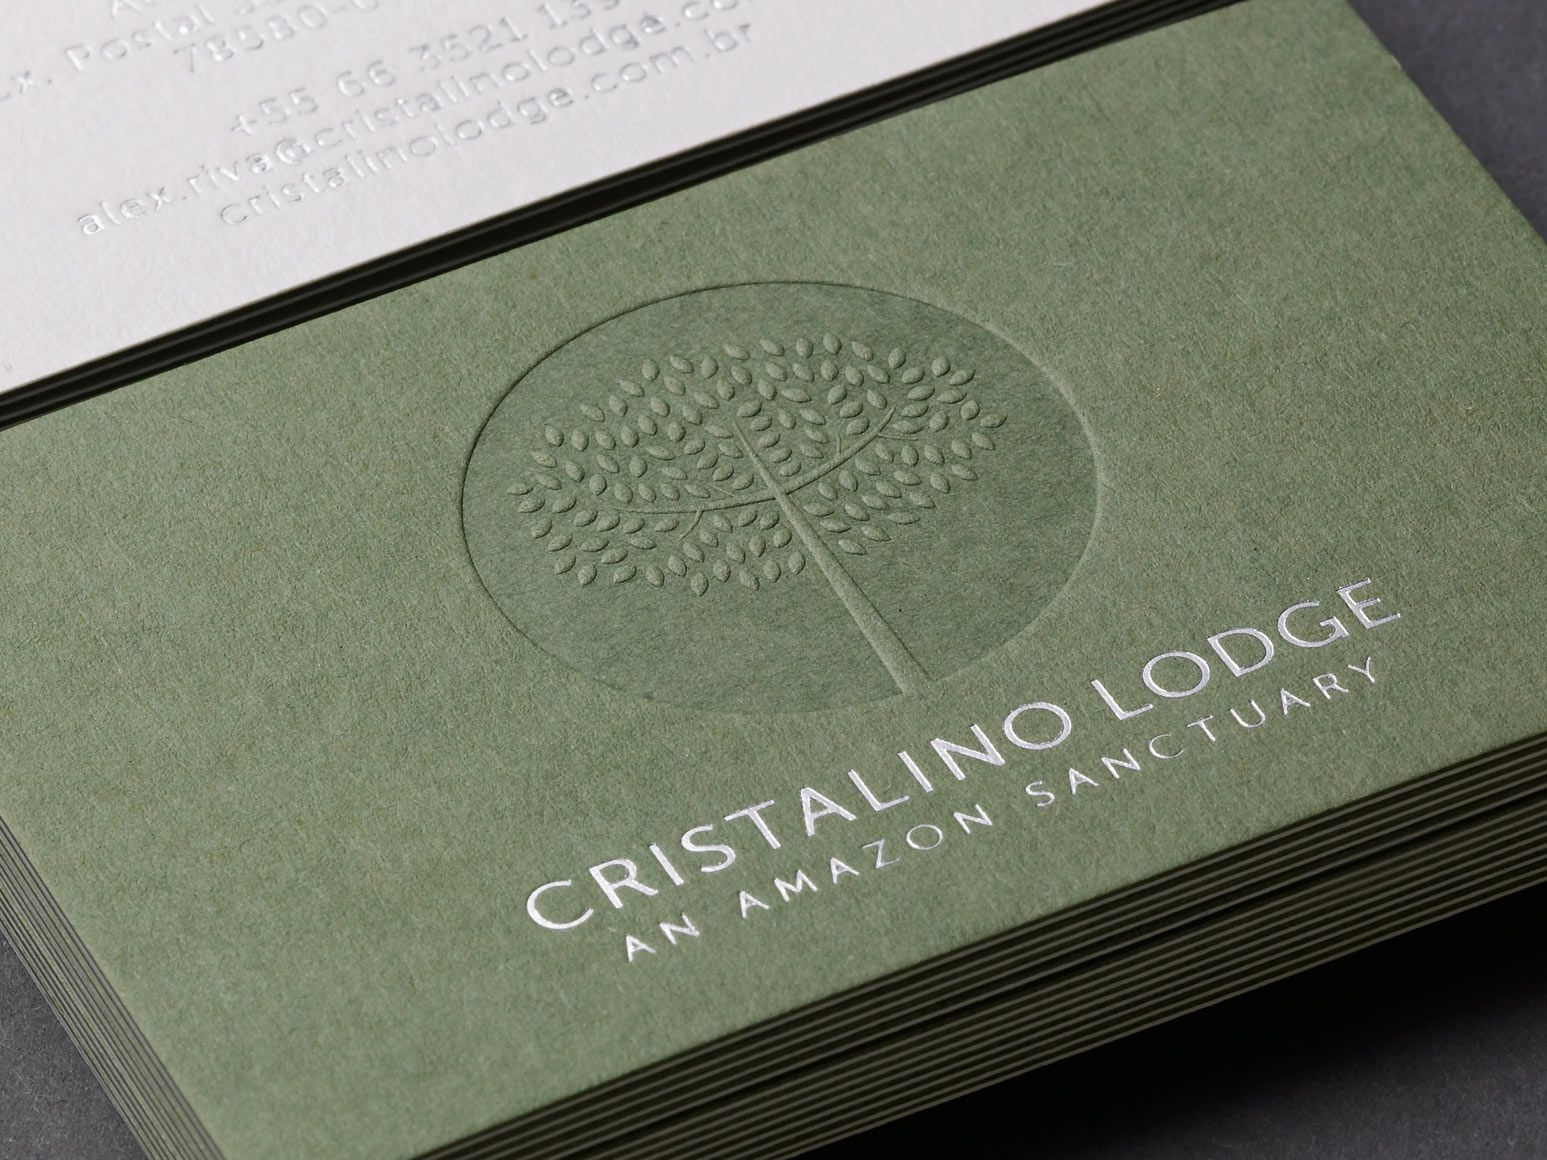 Duplex, blind embossed and silver foil business card for Cristalino ...